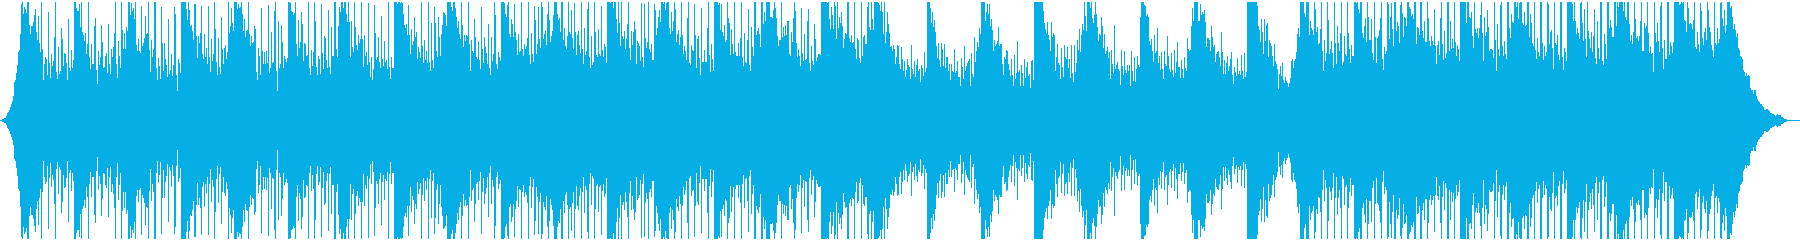 Modern technology background's reproduced waveform